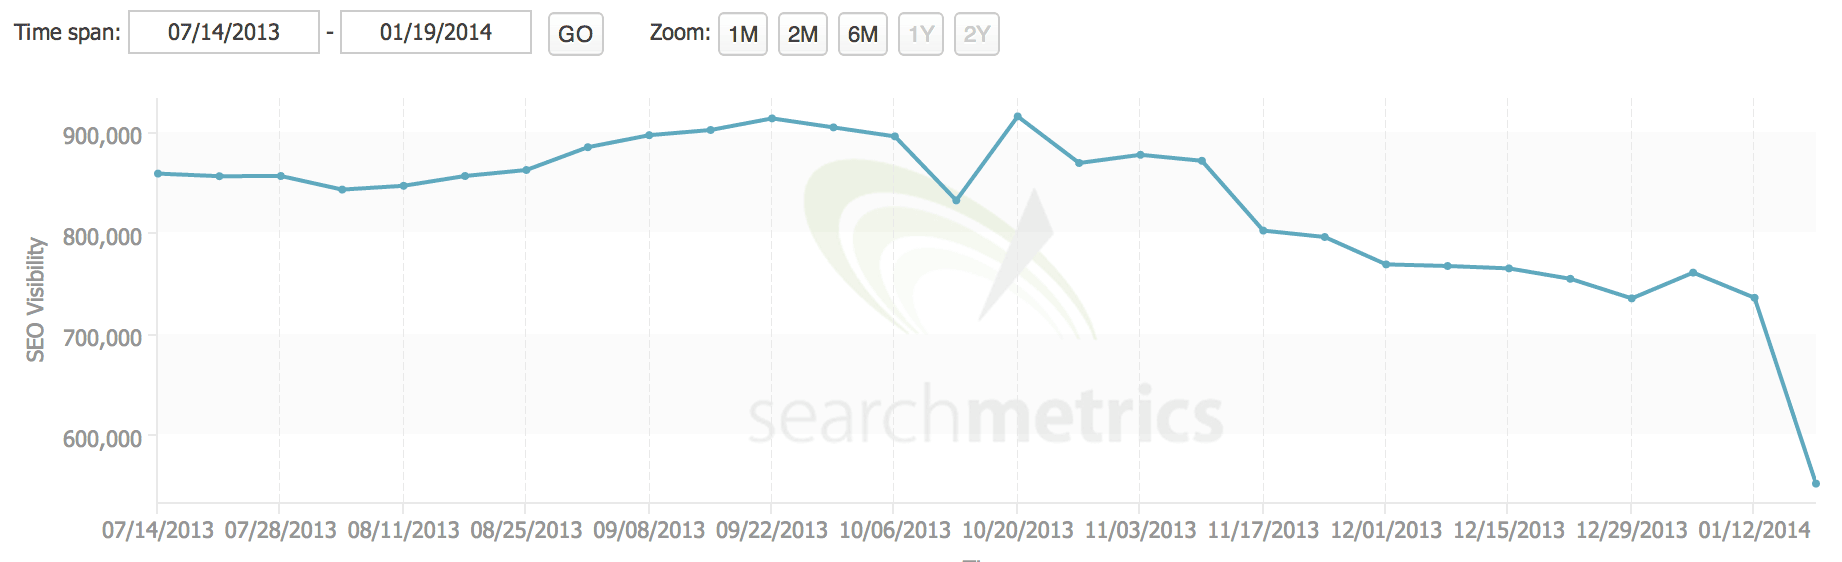 SearchMetrics showed this drop in Expedia's score of relevance in search results.